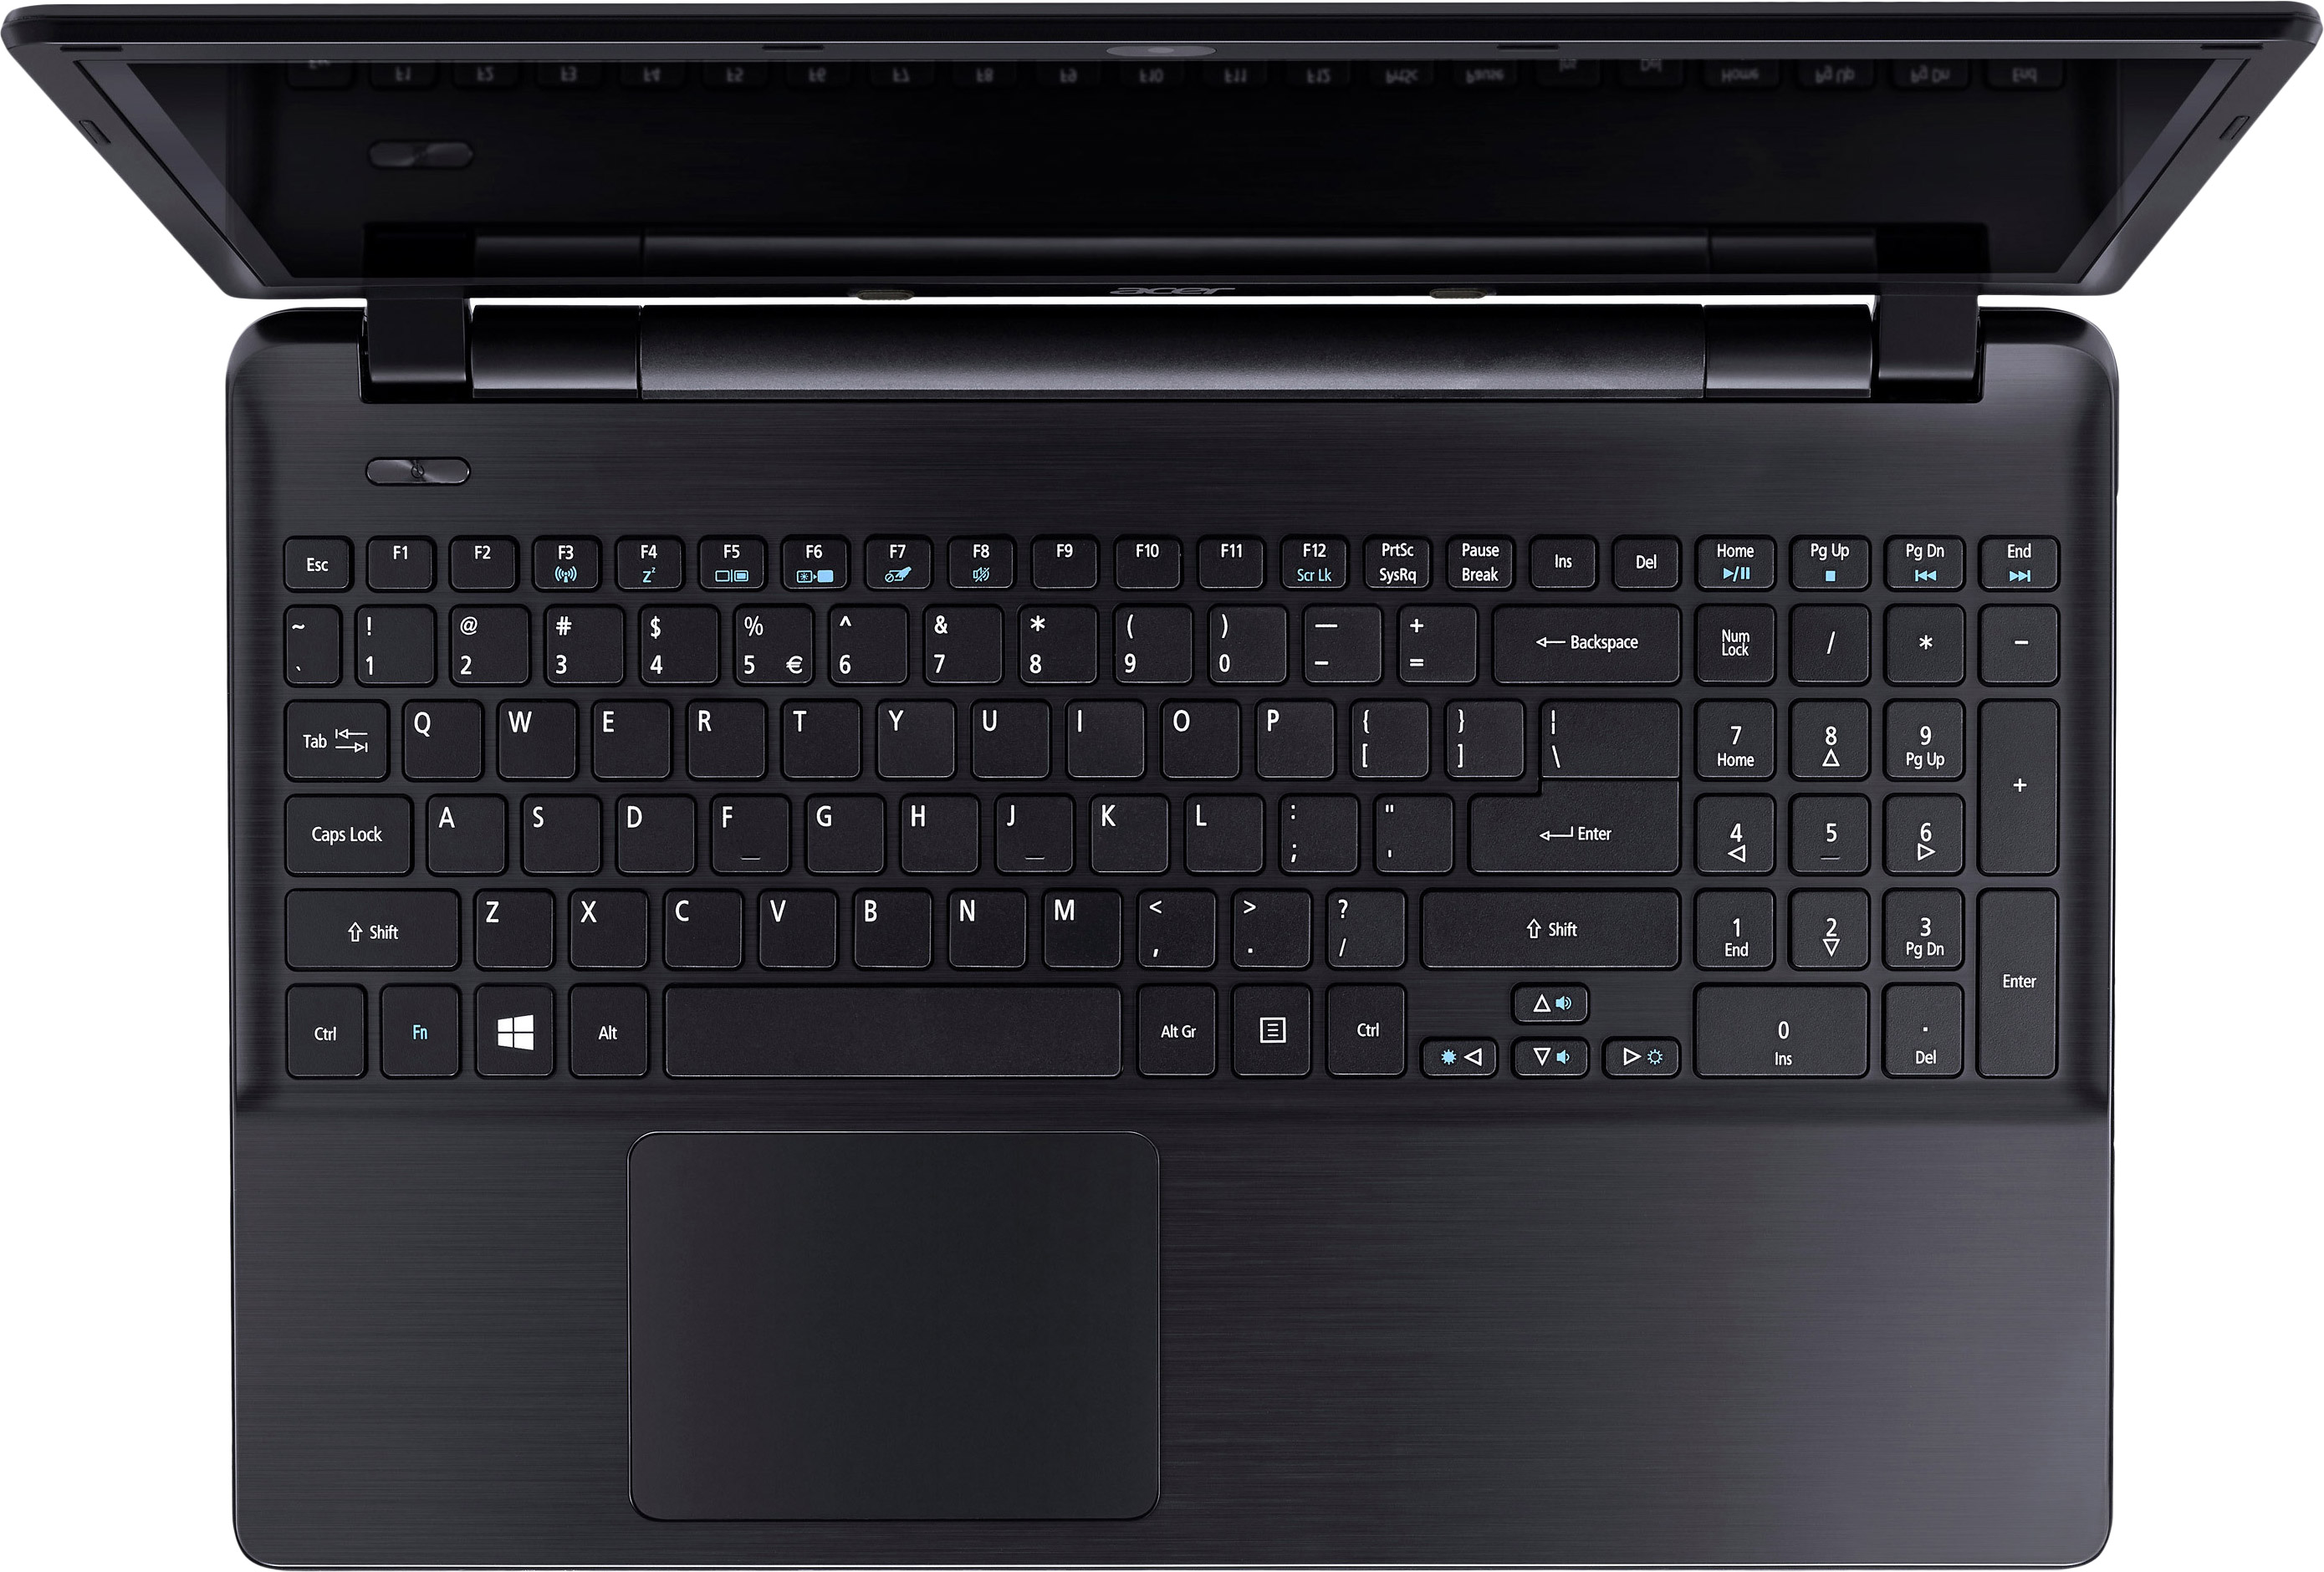 Acer Aspire E5-521G Driver for Windows Download